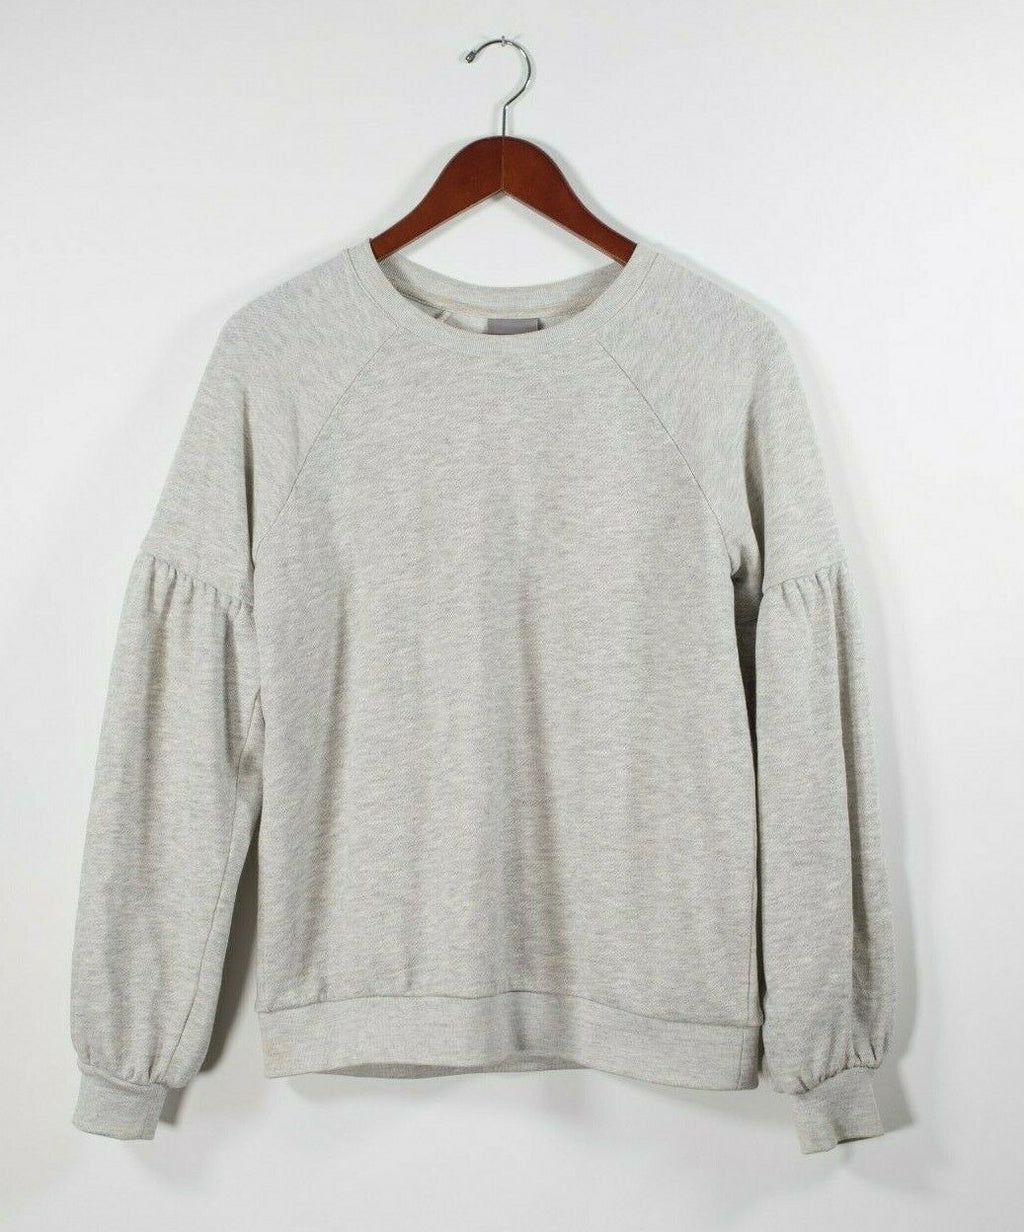 Vero Moda Womens Small Gray Pullover Cotton Blend Crew Neck Sweatshirt Sweater